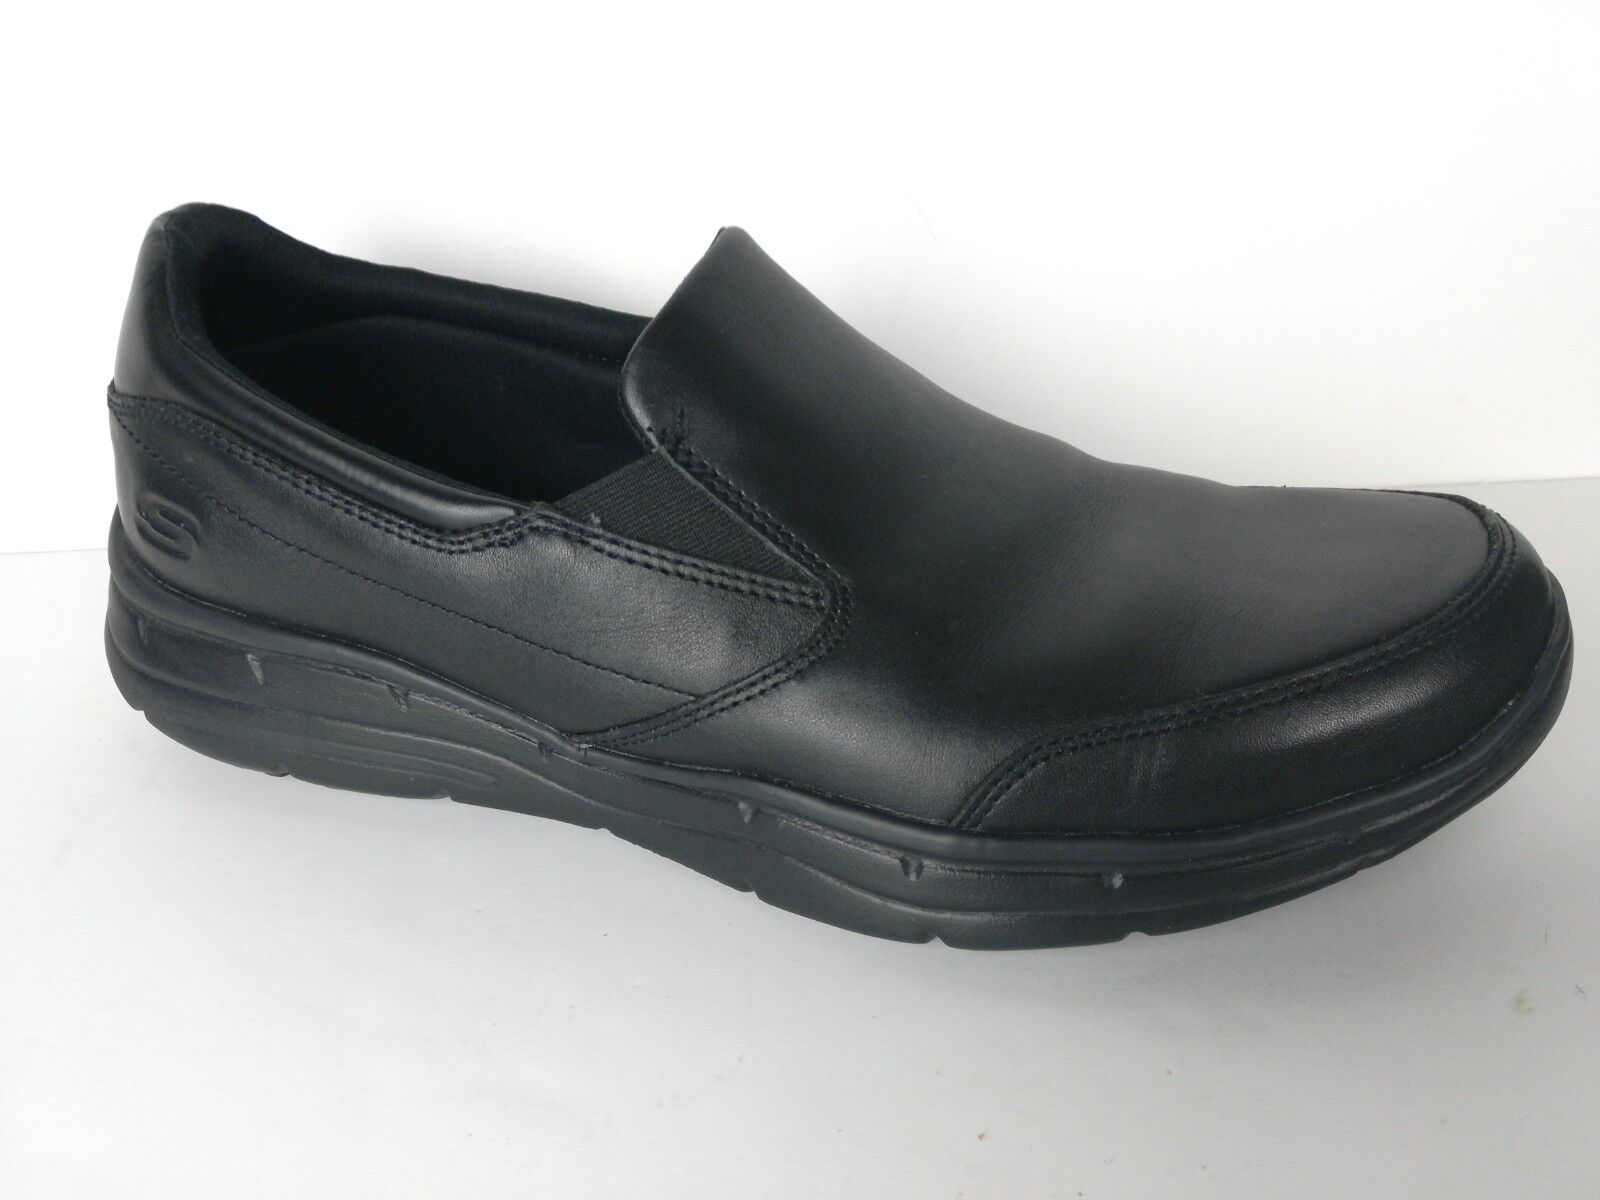 Skechers Men's Relaxed Fit Glides Calculous Slip On, size 13